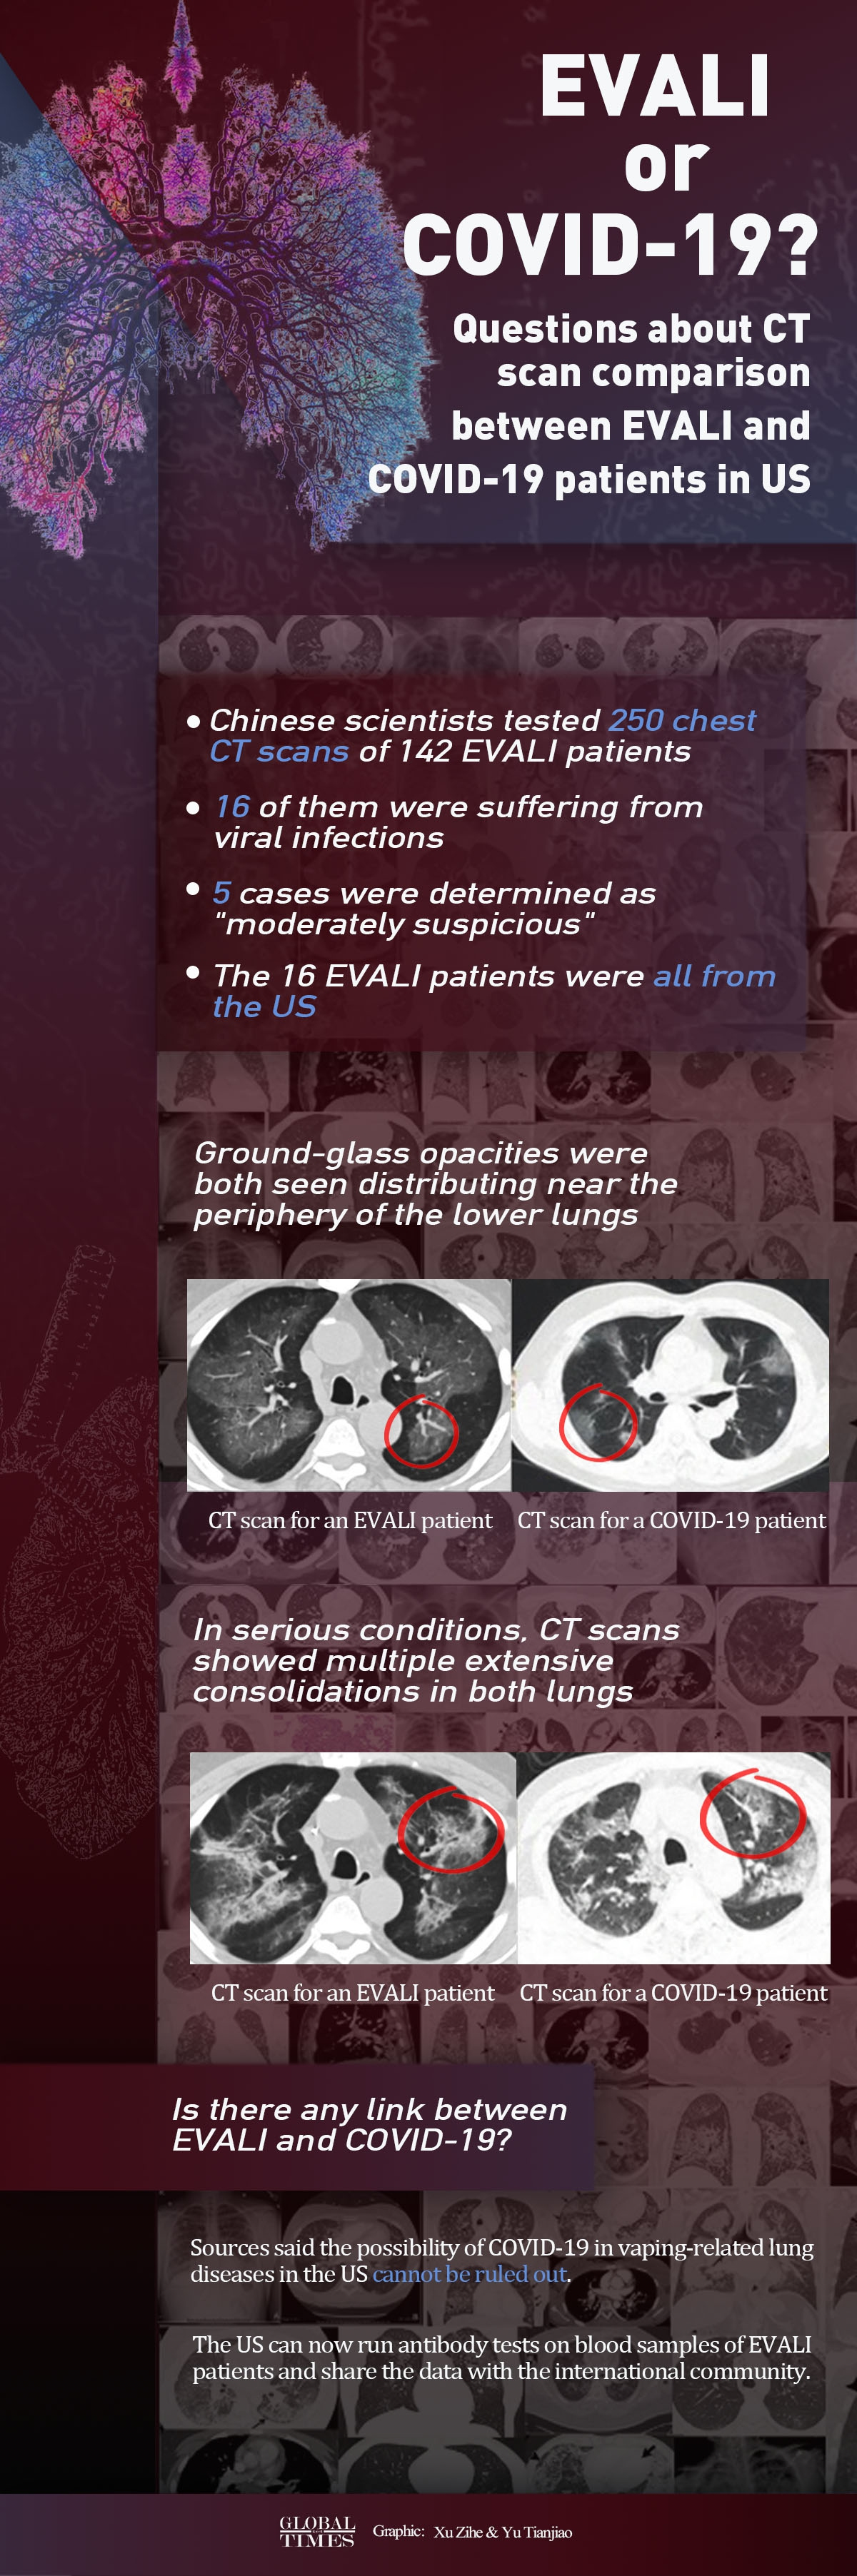 Questions about CT scan comparison between EVALI and COVID-19 patients in the US